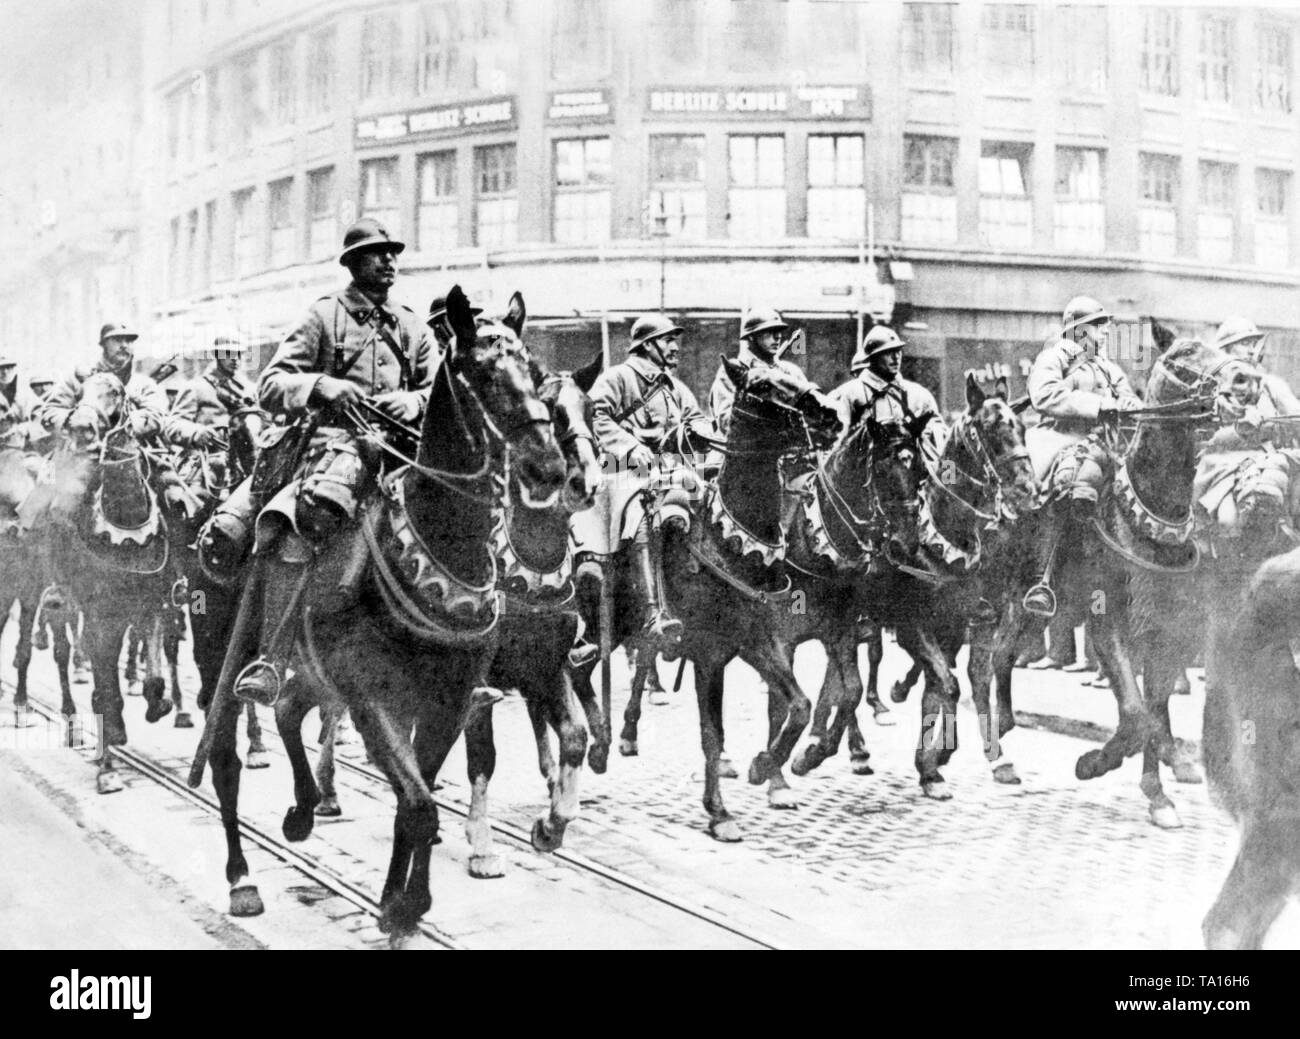 French cavalry units march in Essen as part of the occupation army. - Stock Image